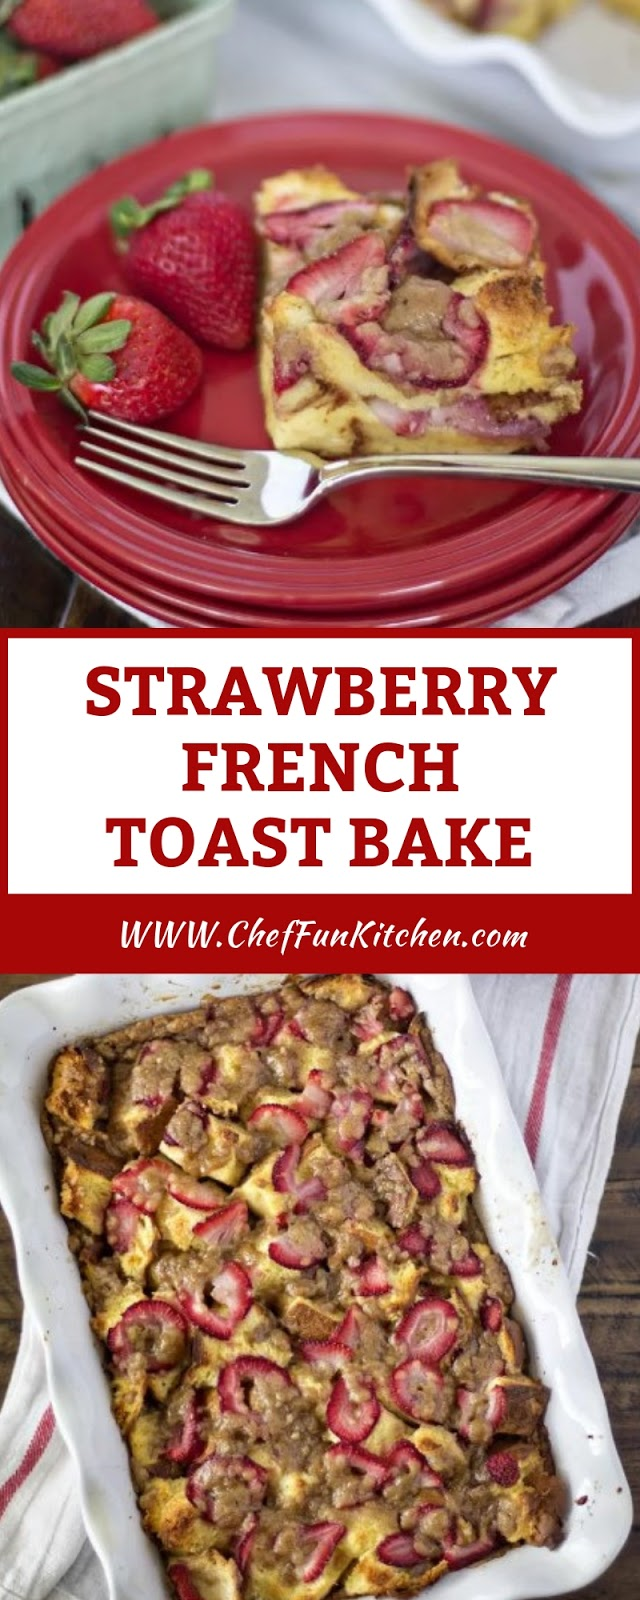 STRAWBERRY FRENCH TOAST BAKE